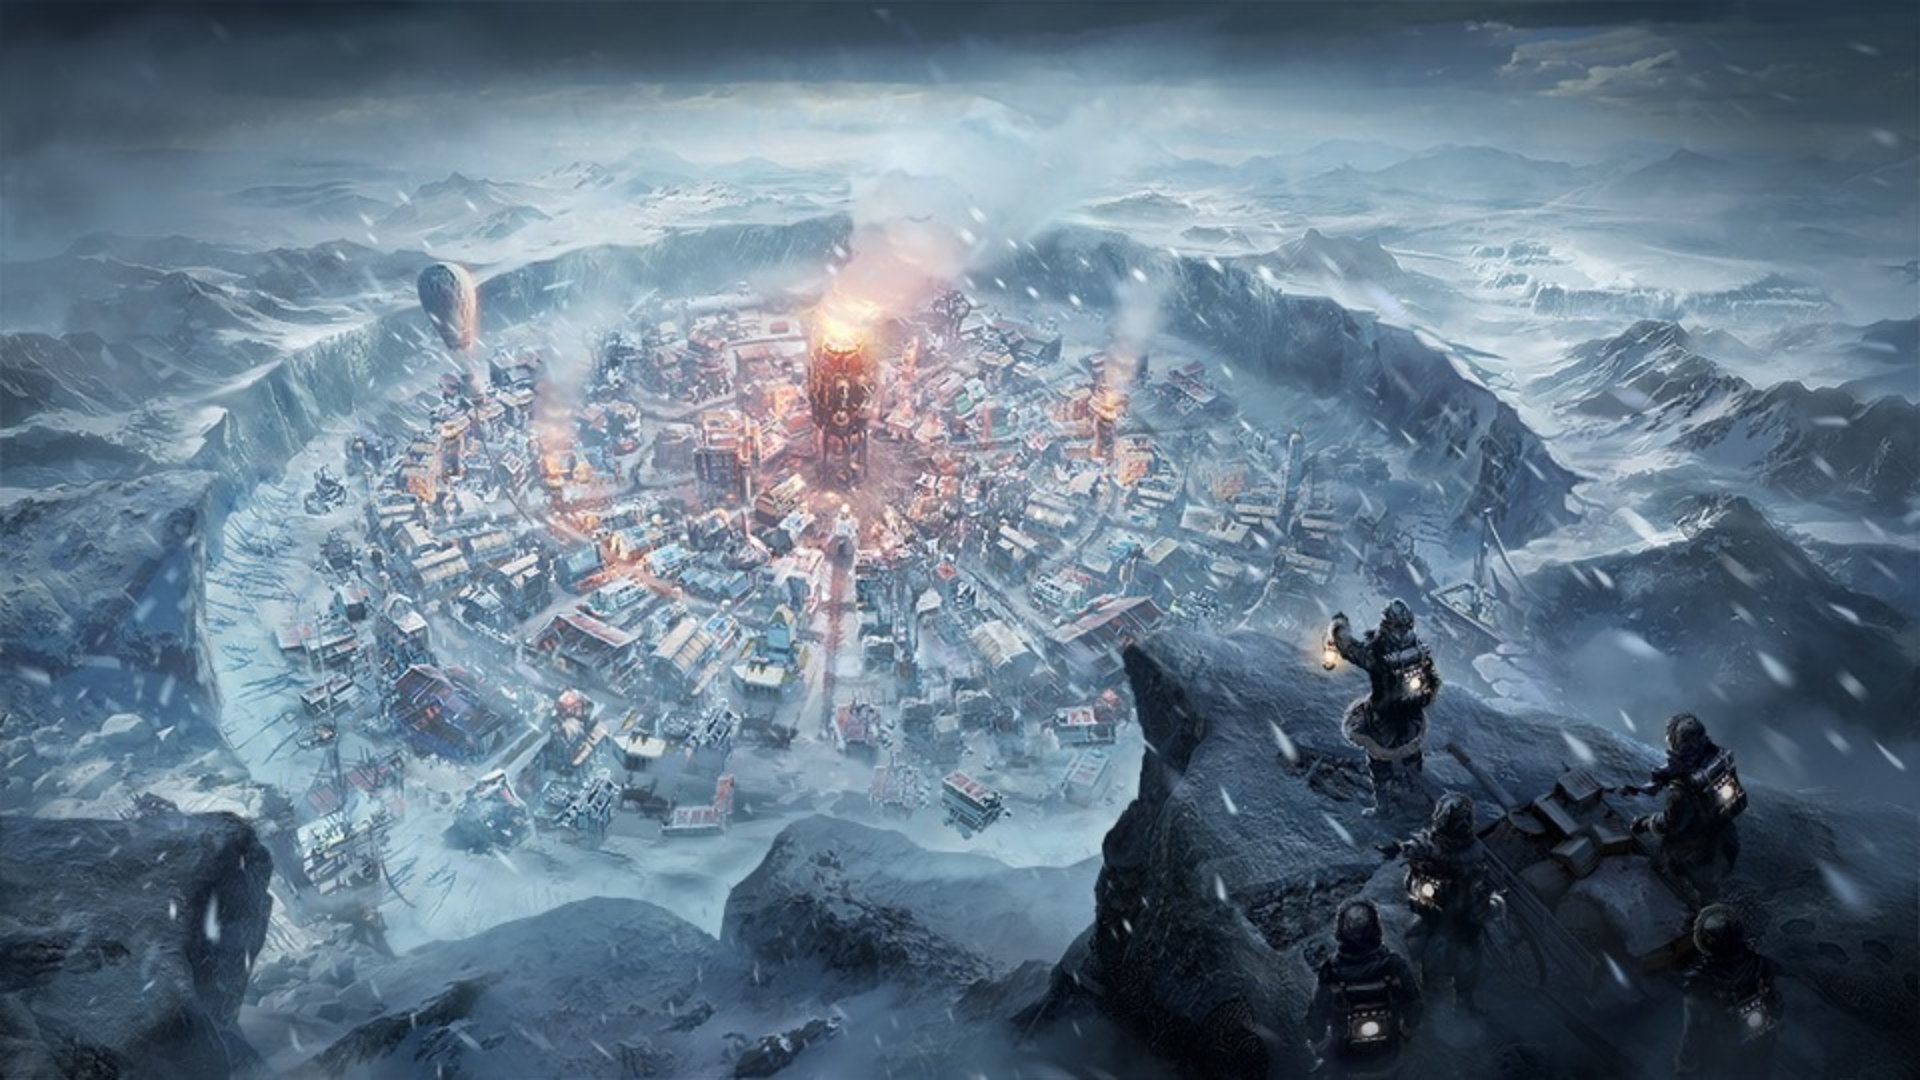 Frostpunk Mobile is an enhanced version of the hit strategy game